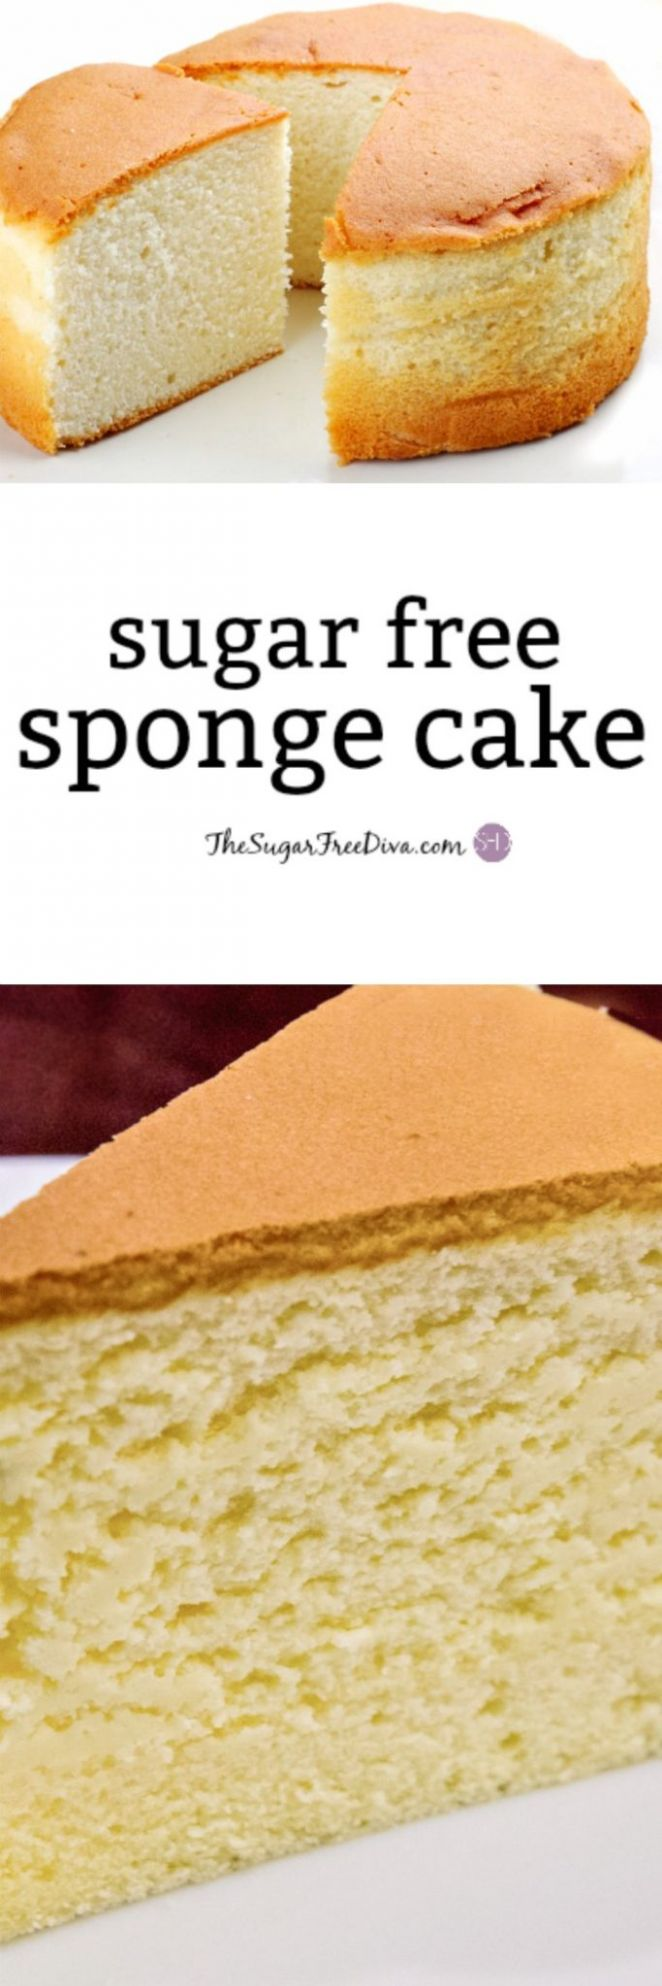 How to make YUMMY and Easy Sugar Free Sponge Cake - Recipes Cakes For Diabetics